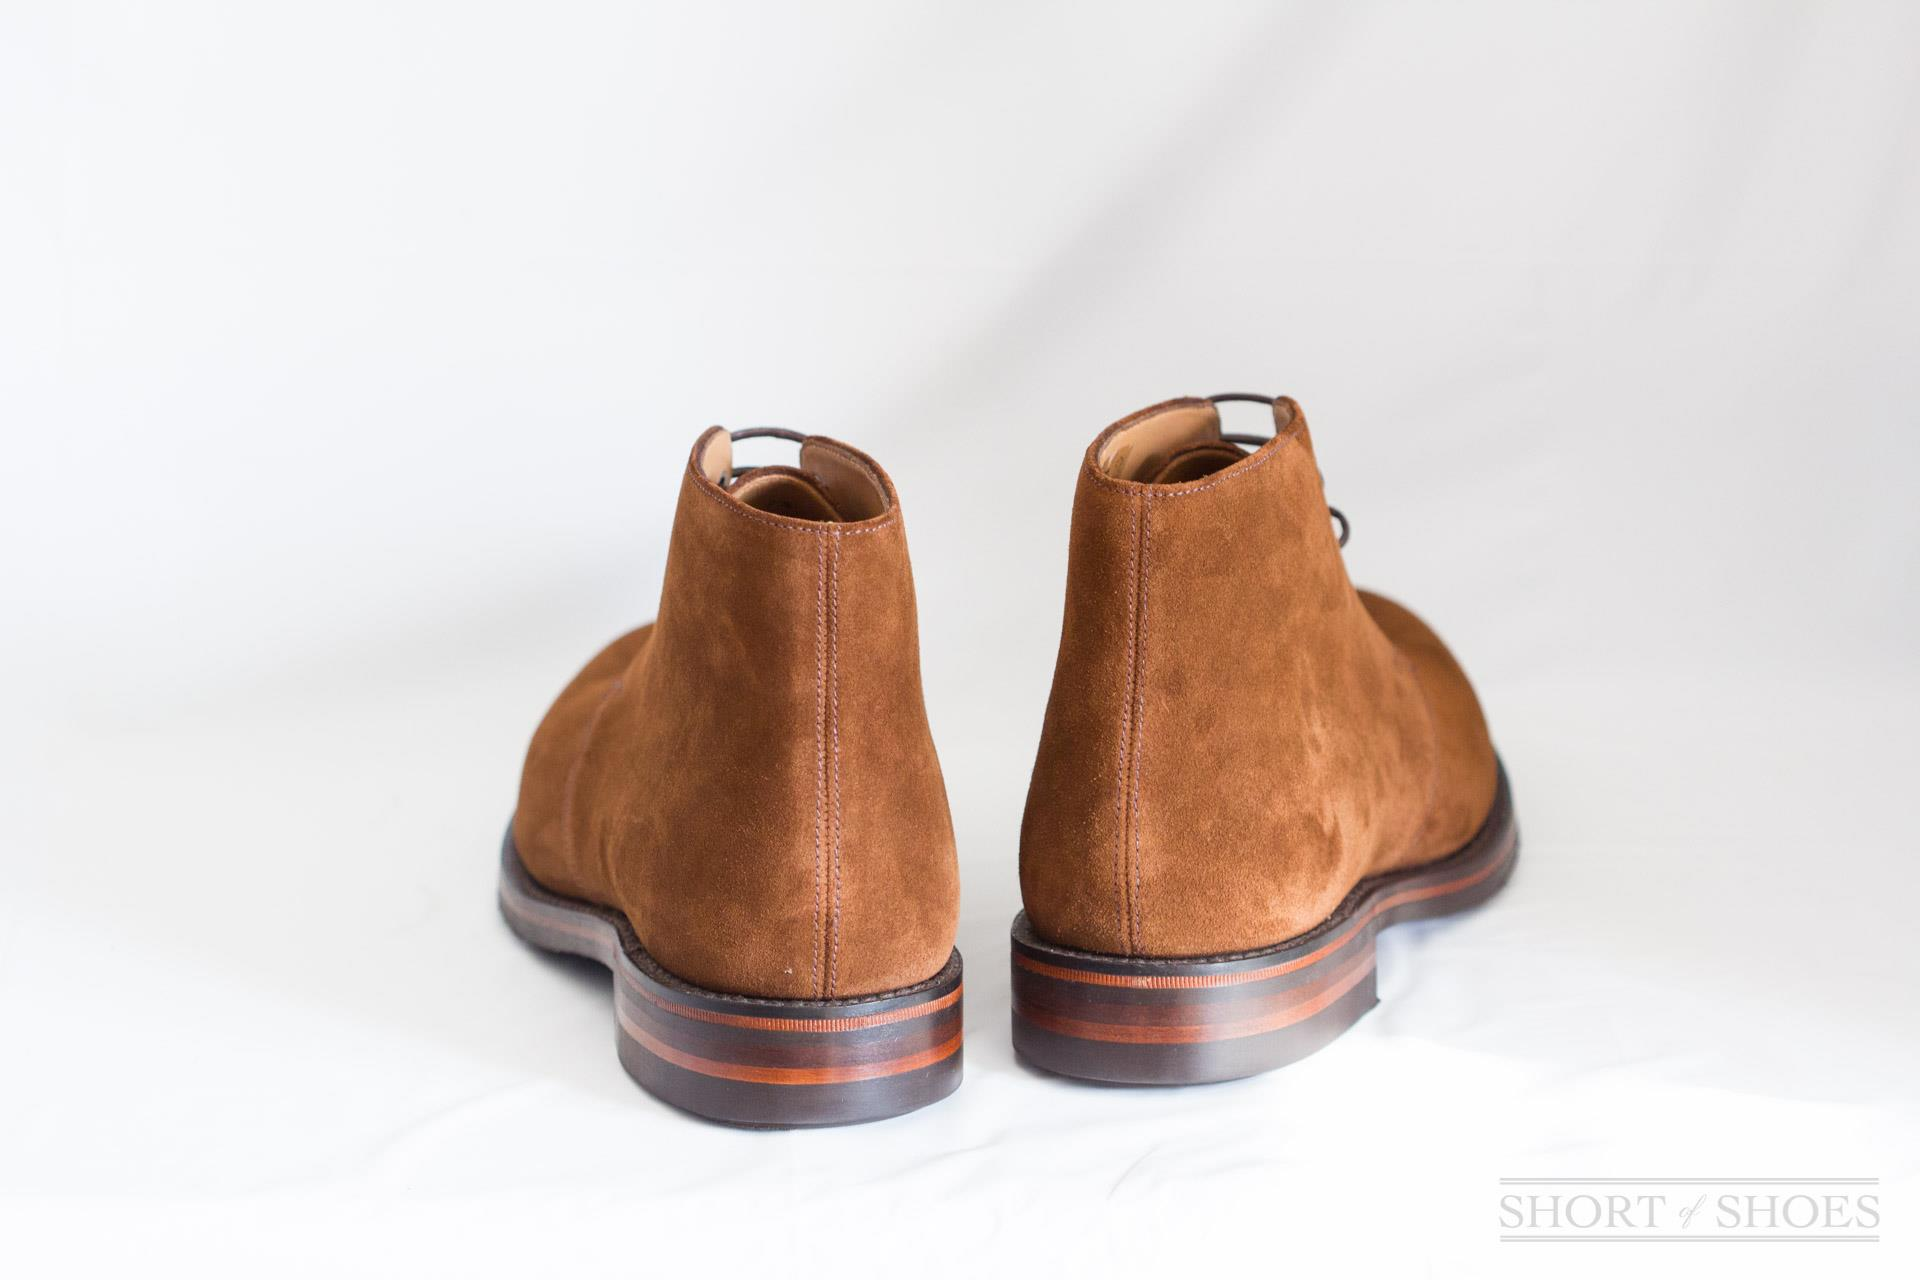 Loake Design Shoes Review